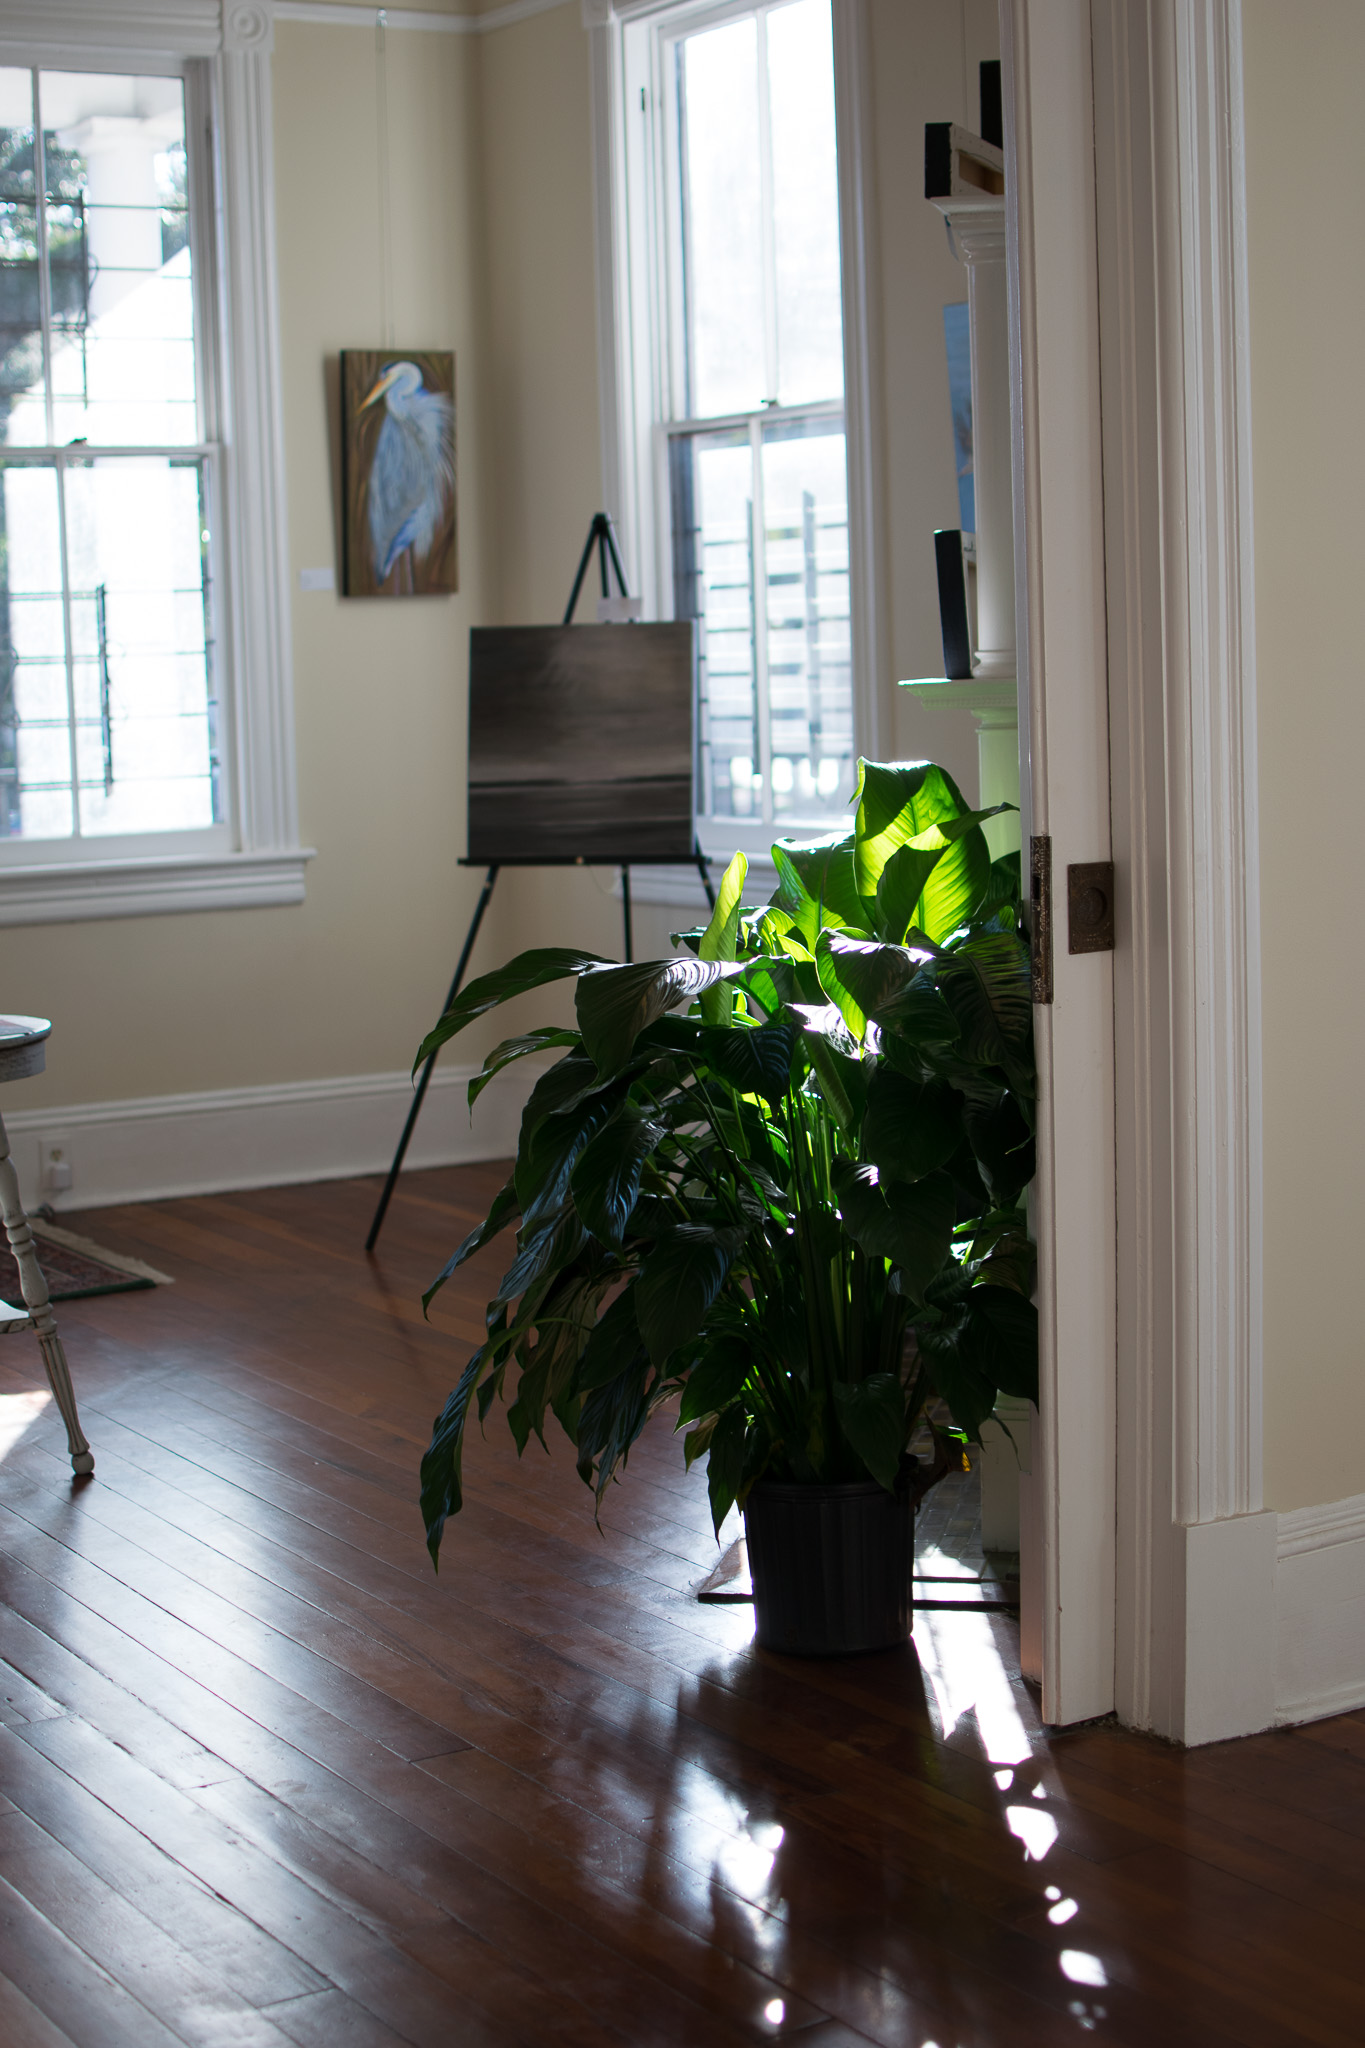 A view of the room where Mrs. Grant's art was on display. Sunlight shines through the windows through the leaves of the potted plants on the floor.